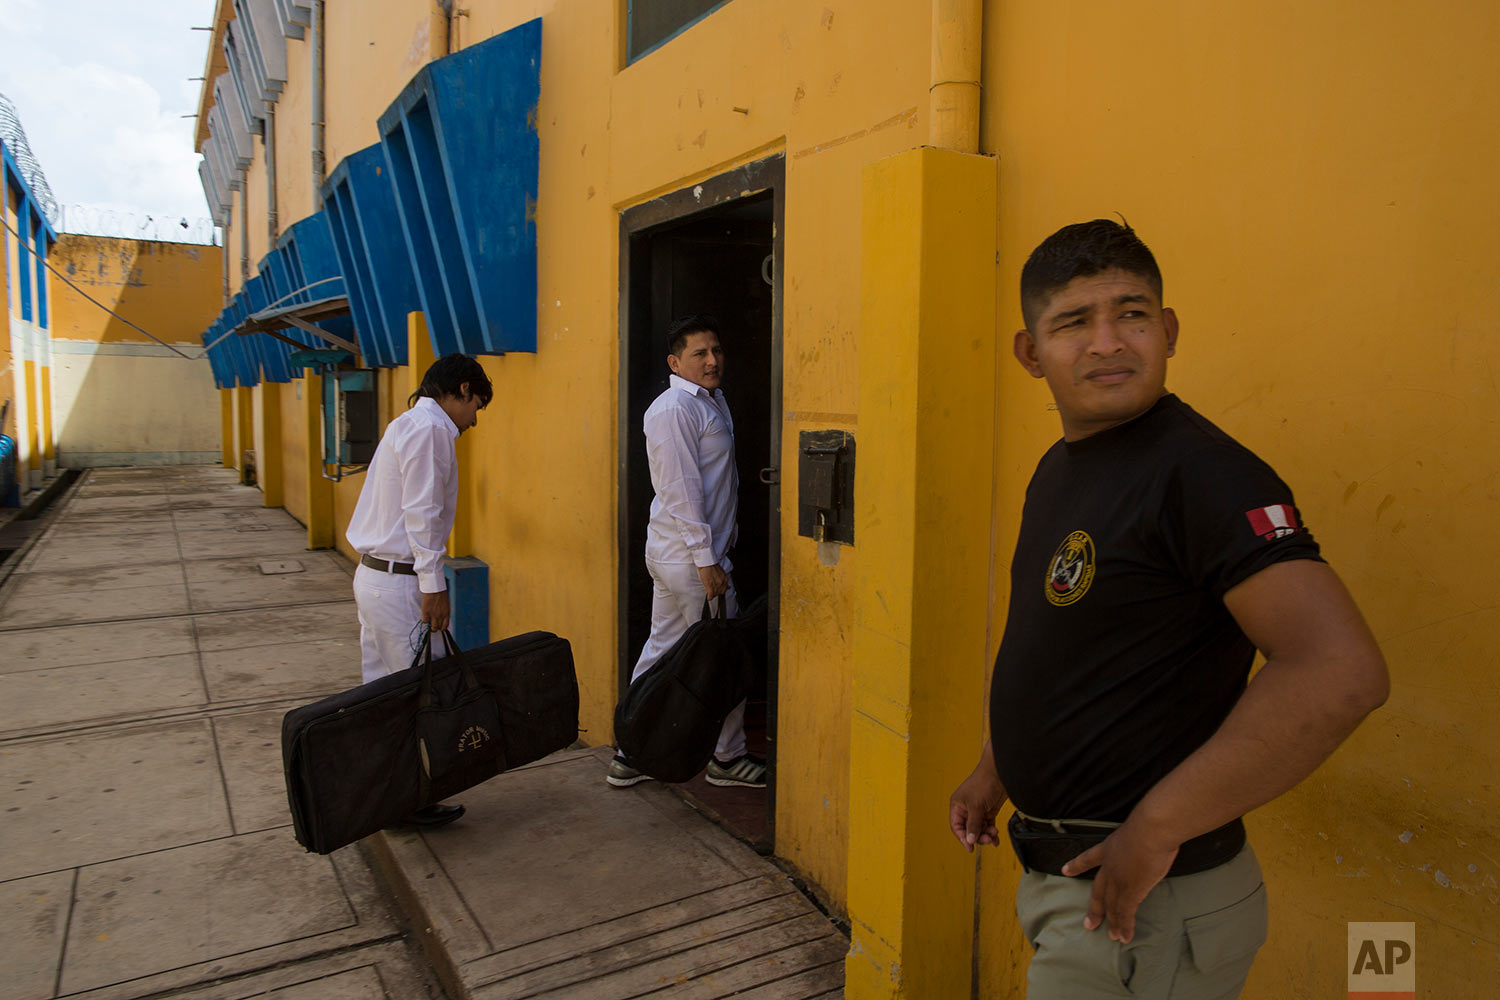 """In this Jan. 12, 2018 photo, inmate band members """"Sin Limites,"""" or Without Limits, return to their jail cells after rehearsing their song """"Esperanza y Amor,"""" or Hope and Love, written by them especially for Pope Francis' upcoming visit to the Amazon, in Puerto Maldonado, Madre de Dios province, Peru. The pontiff has spoken about the importance of protecting the Amazon in the past, referring to the world's largest rainforest as one of the """"lungs of our planet"""" in a letter to bishops. (AP Photo/Rodrigo Abd)